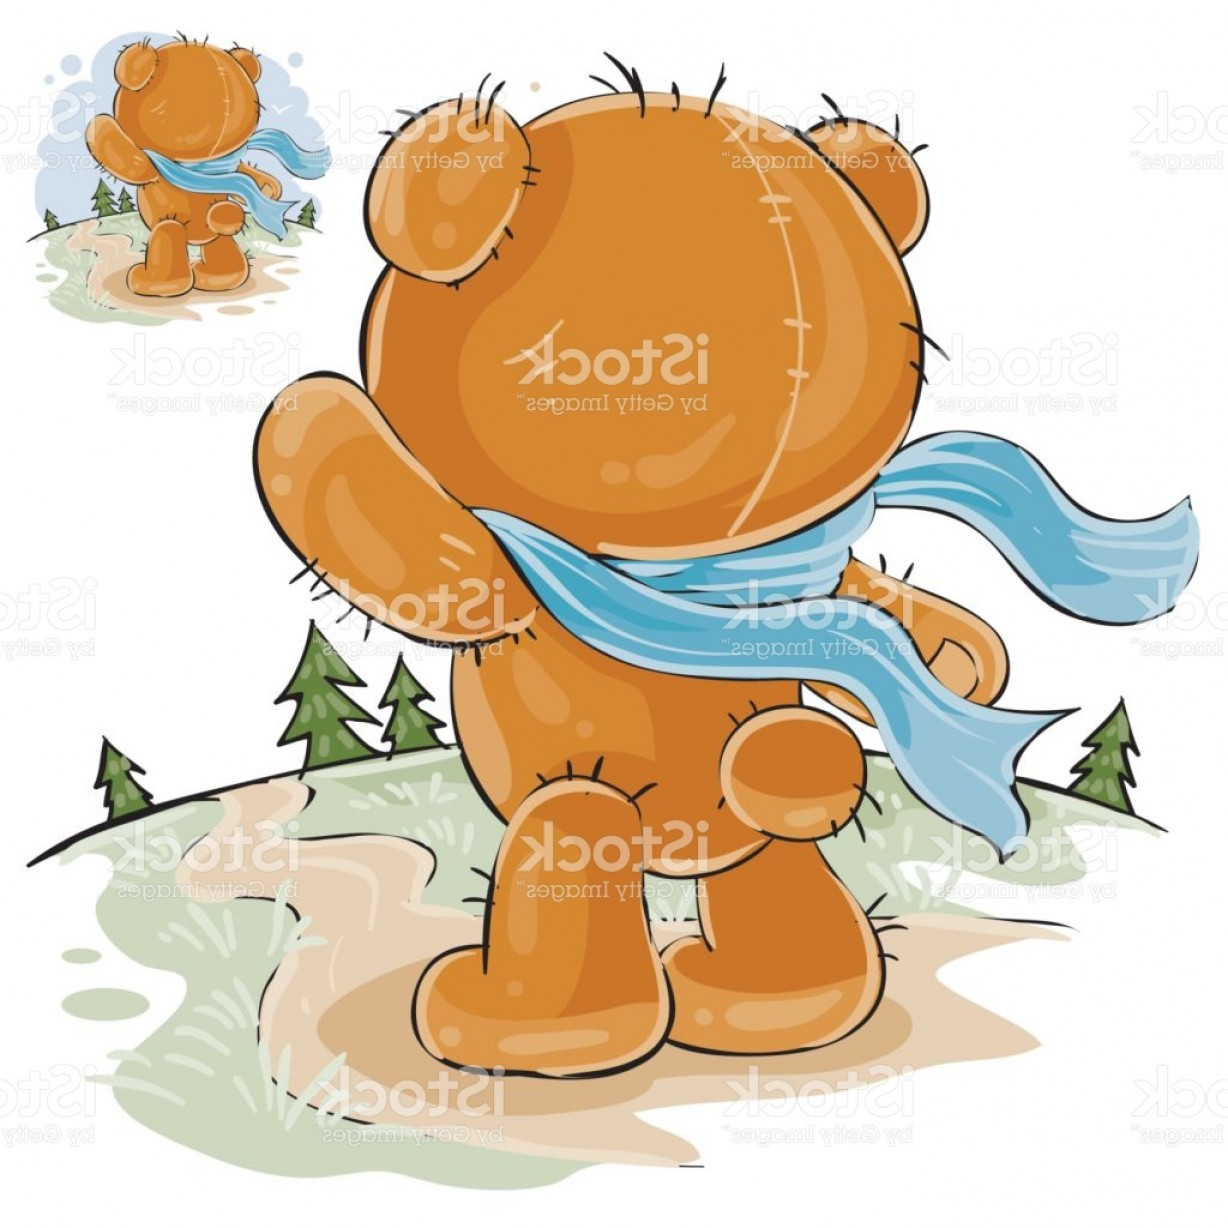 Road Sign Silhouette Vector Bear: Vector Illustration Of A Brown Teddy Bear Sad Standing In The Wind Looking At The Gm